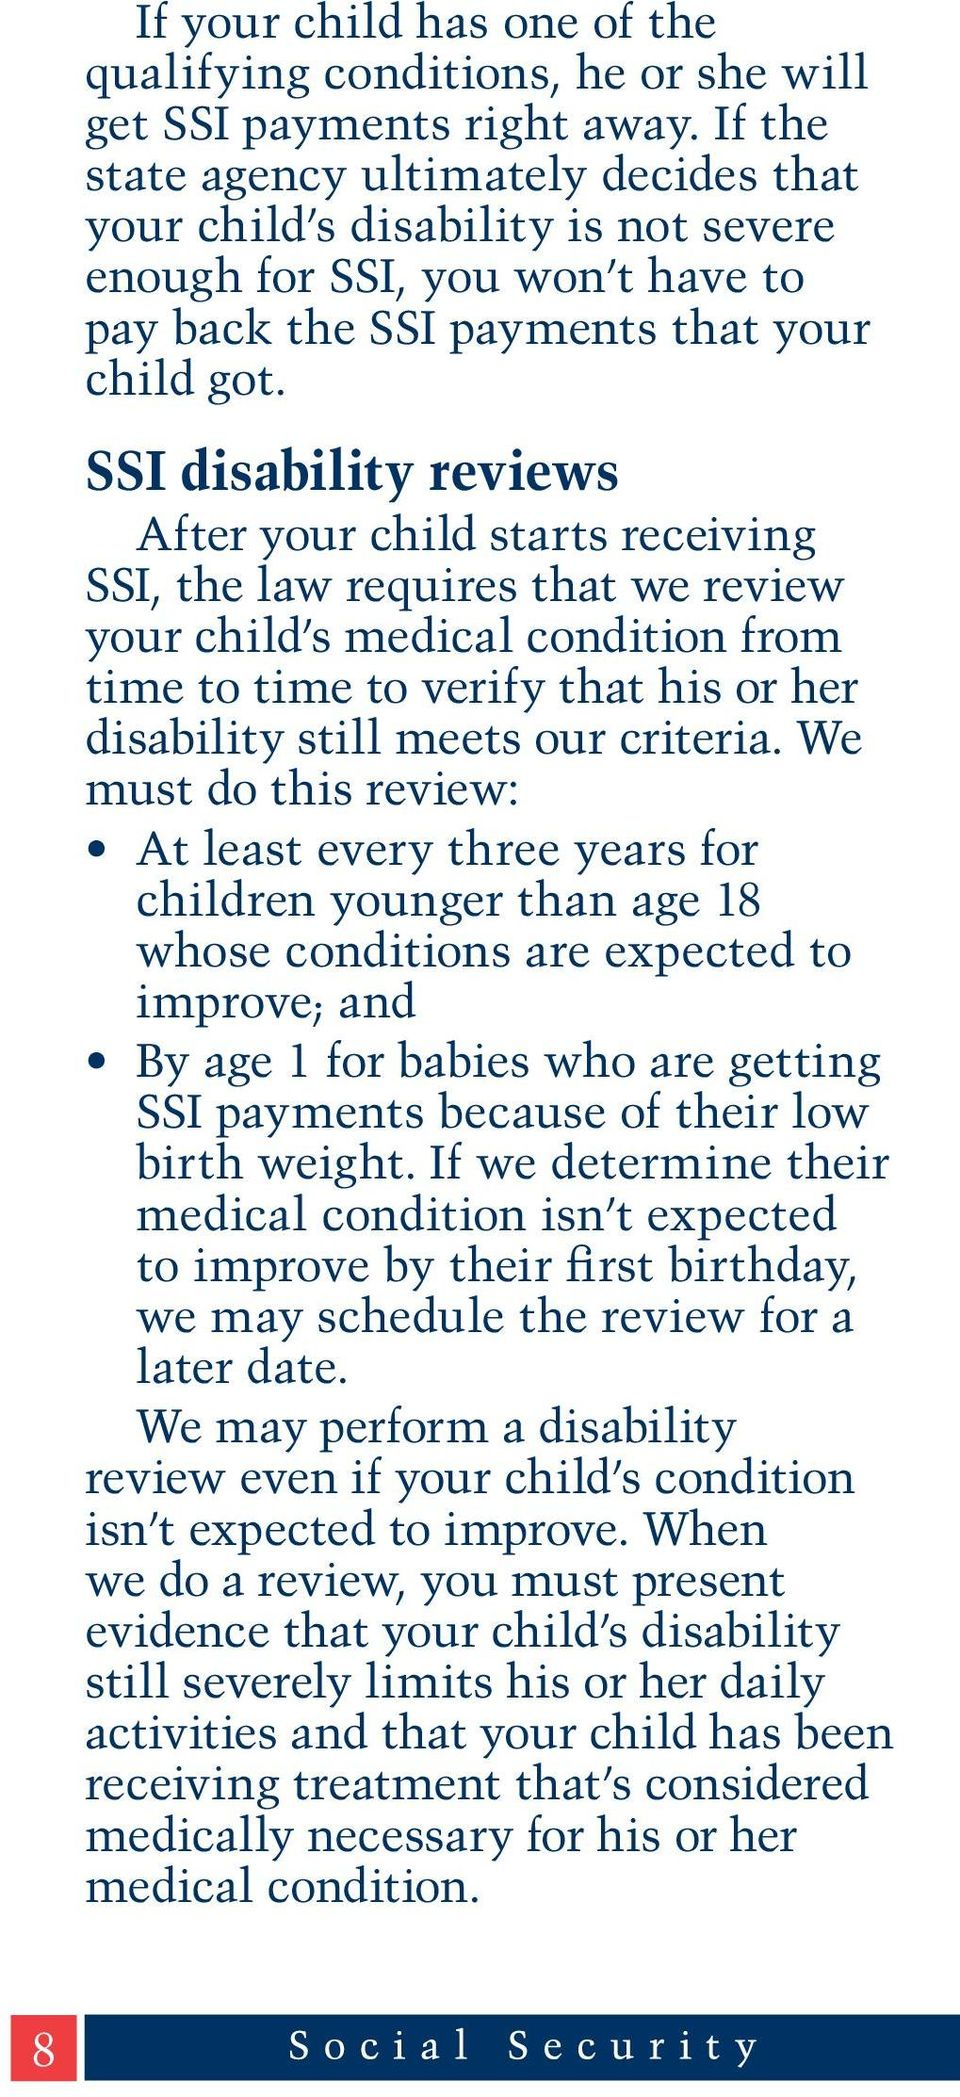 SSI disability reviews After your child starts receiving SSI, the law requires that we review your child s medical condition from time to time to verify that his or her disability still meets our